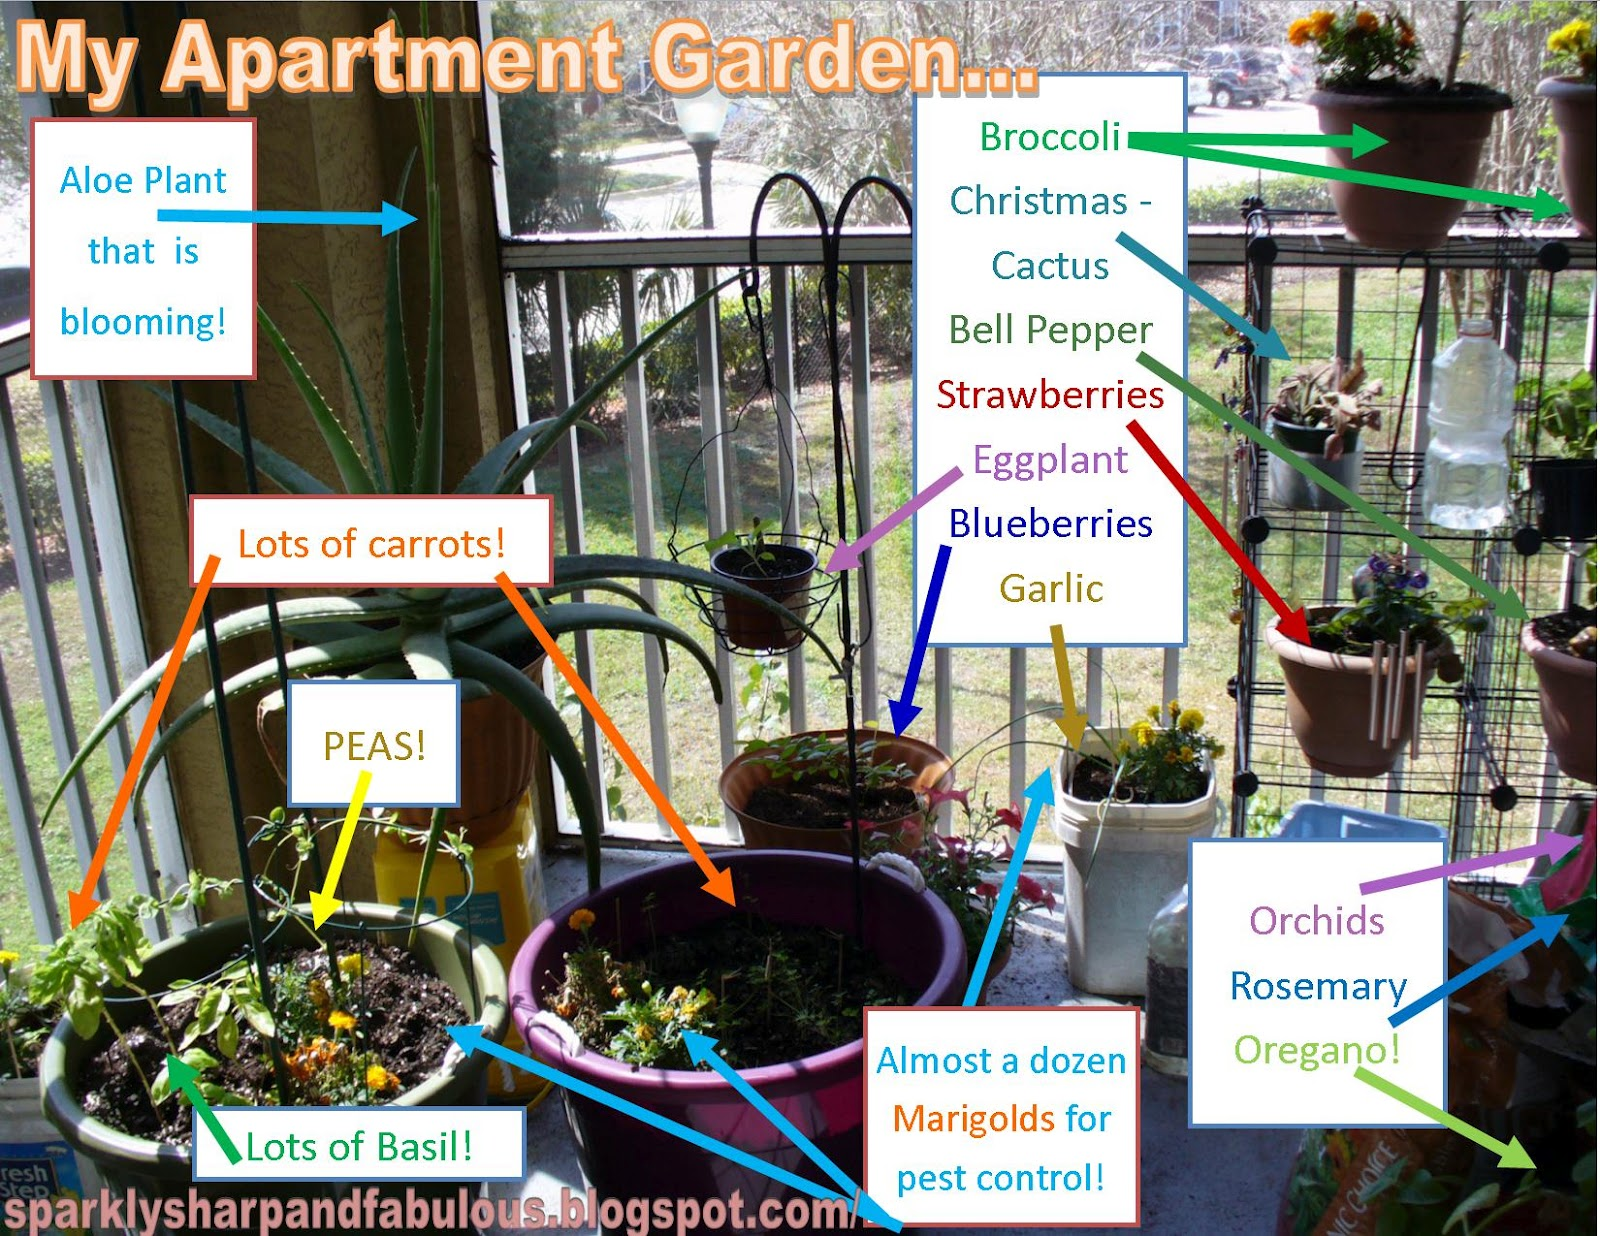 Garden Design Garden Design with Apartment Vegetable Garden on